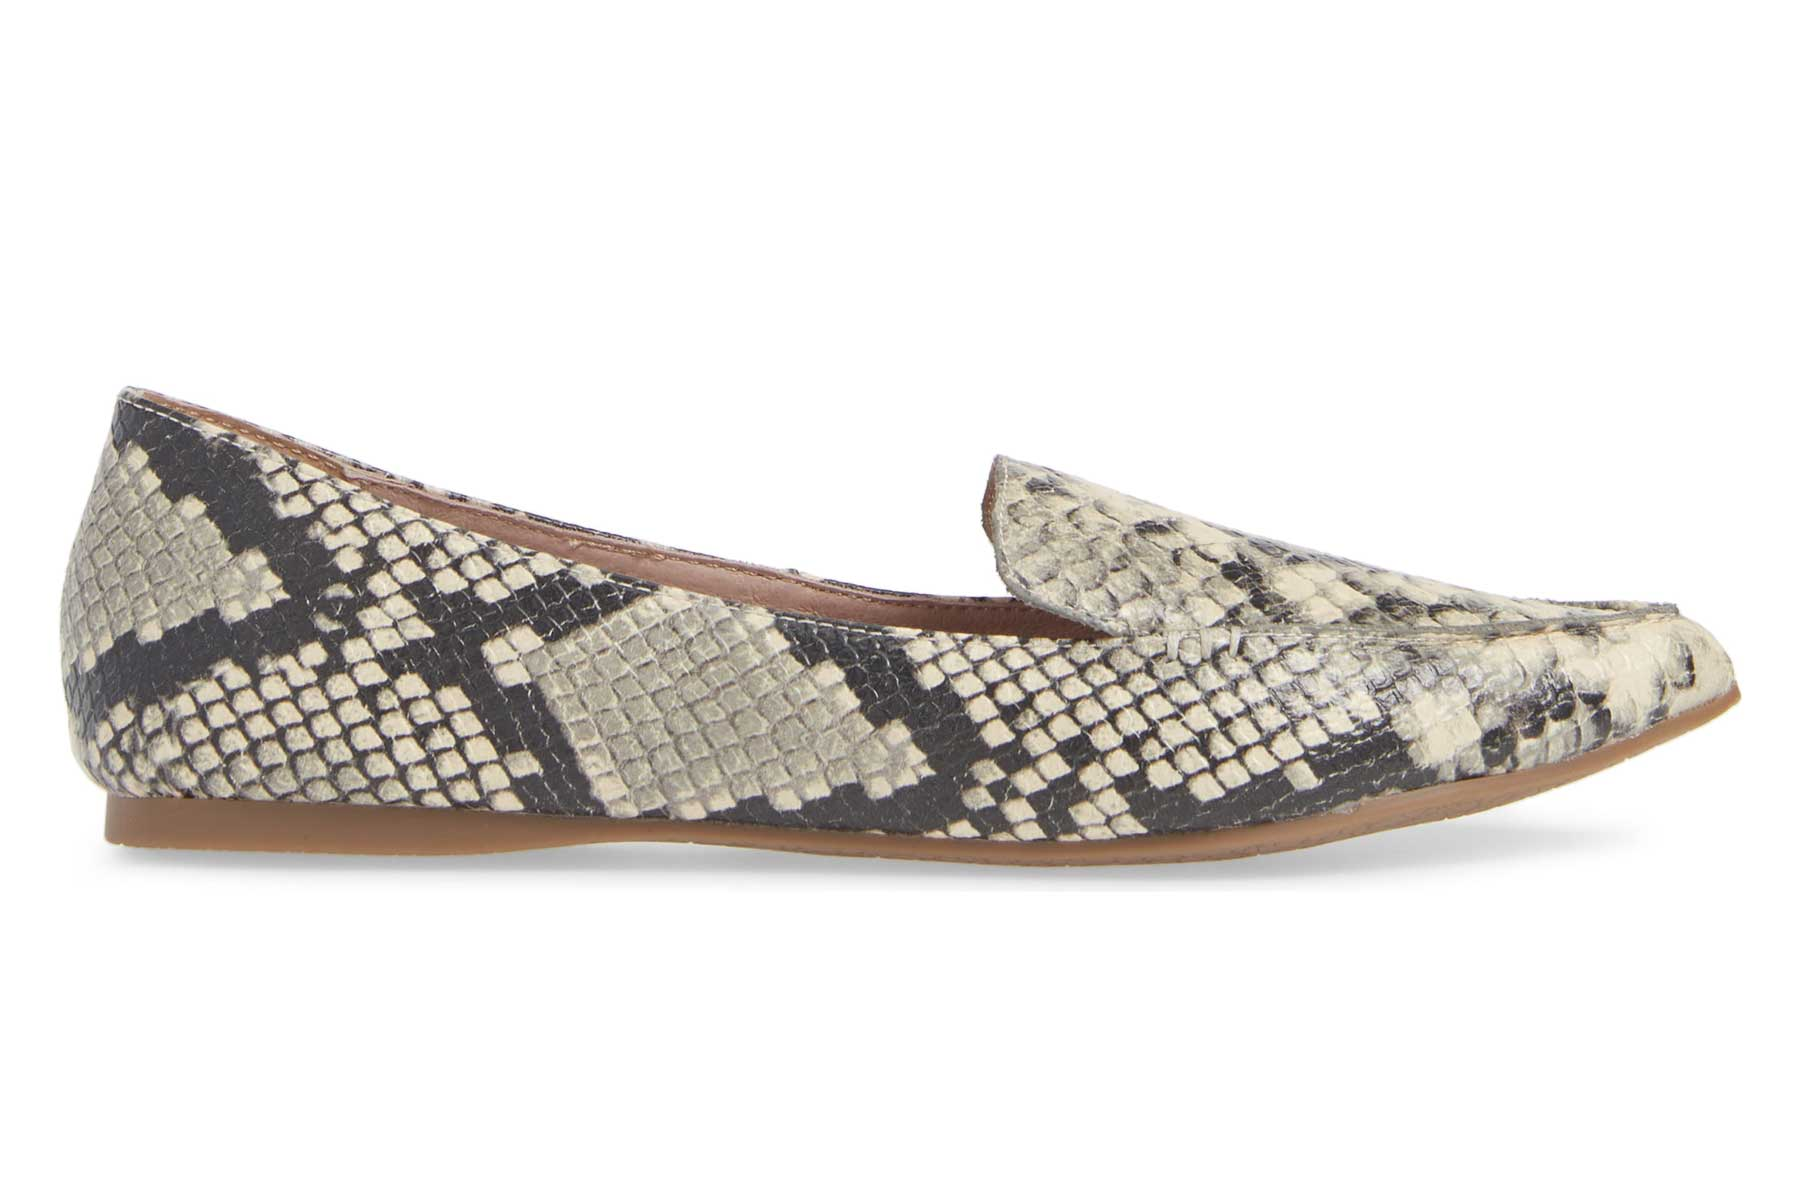 Steve Madden snakeskin Feather Loafer